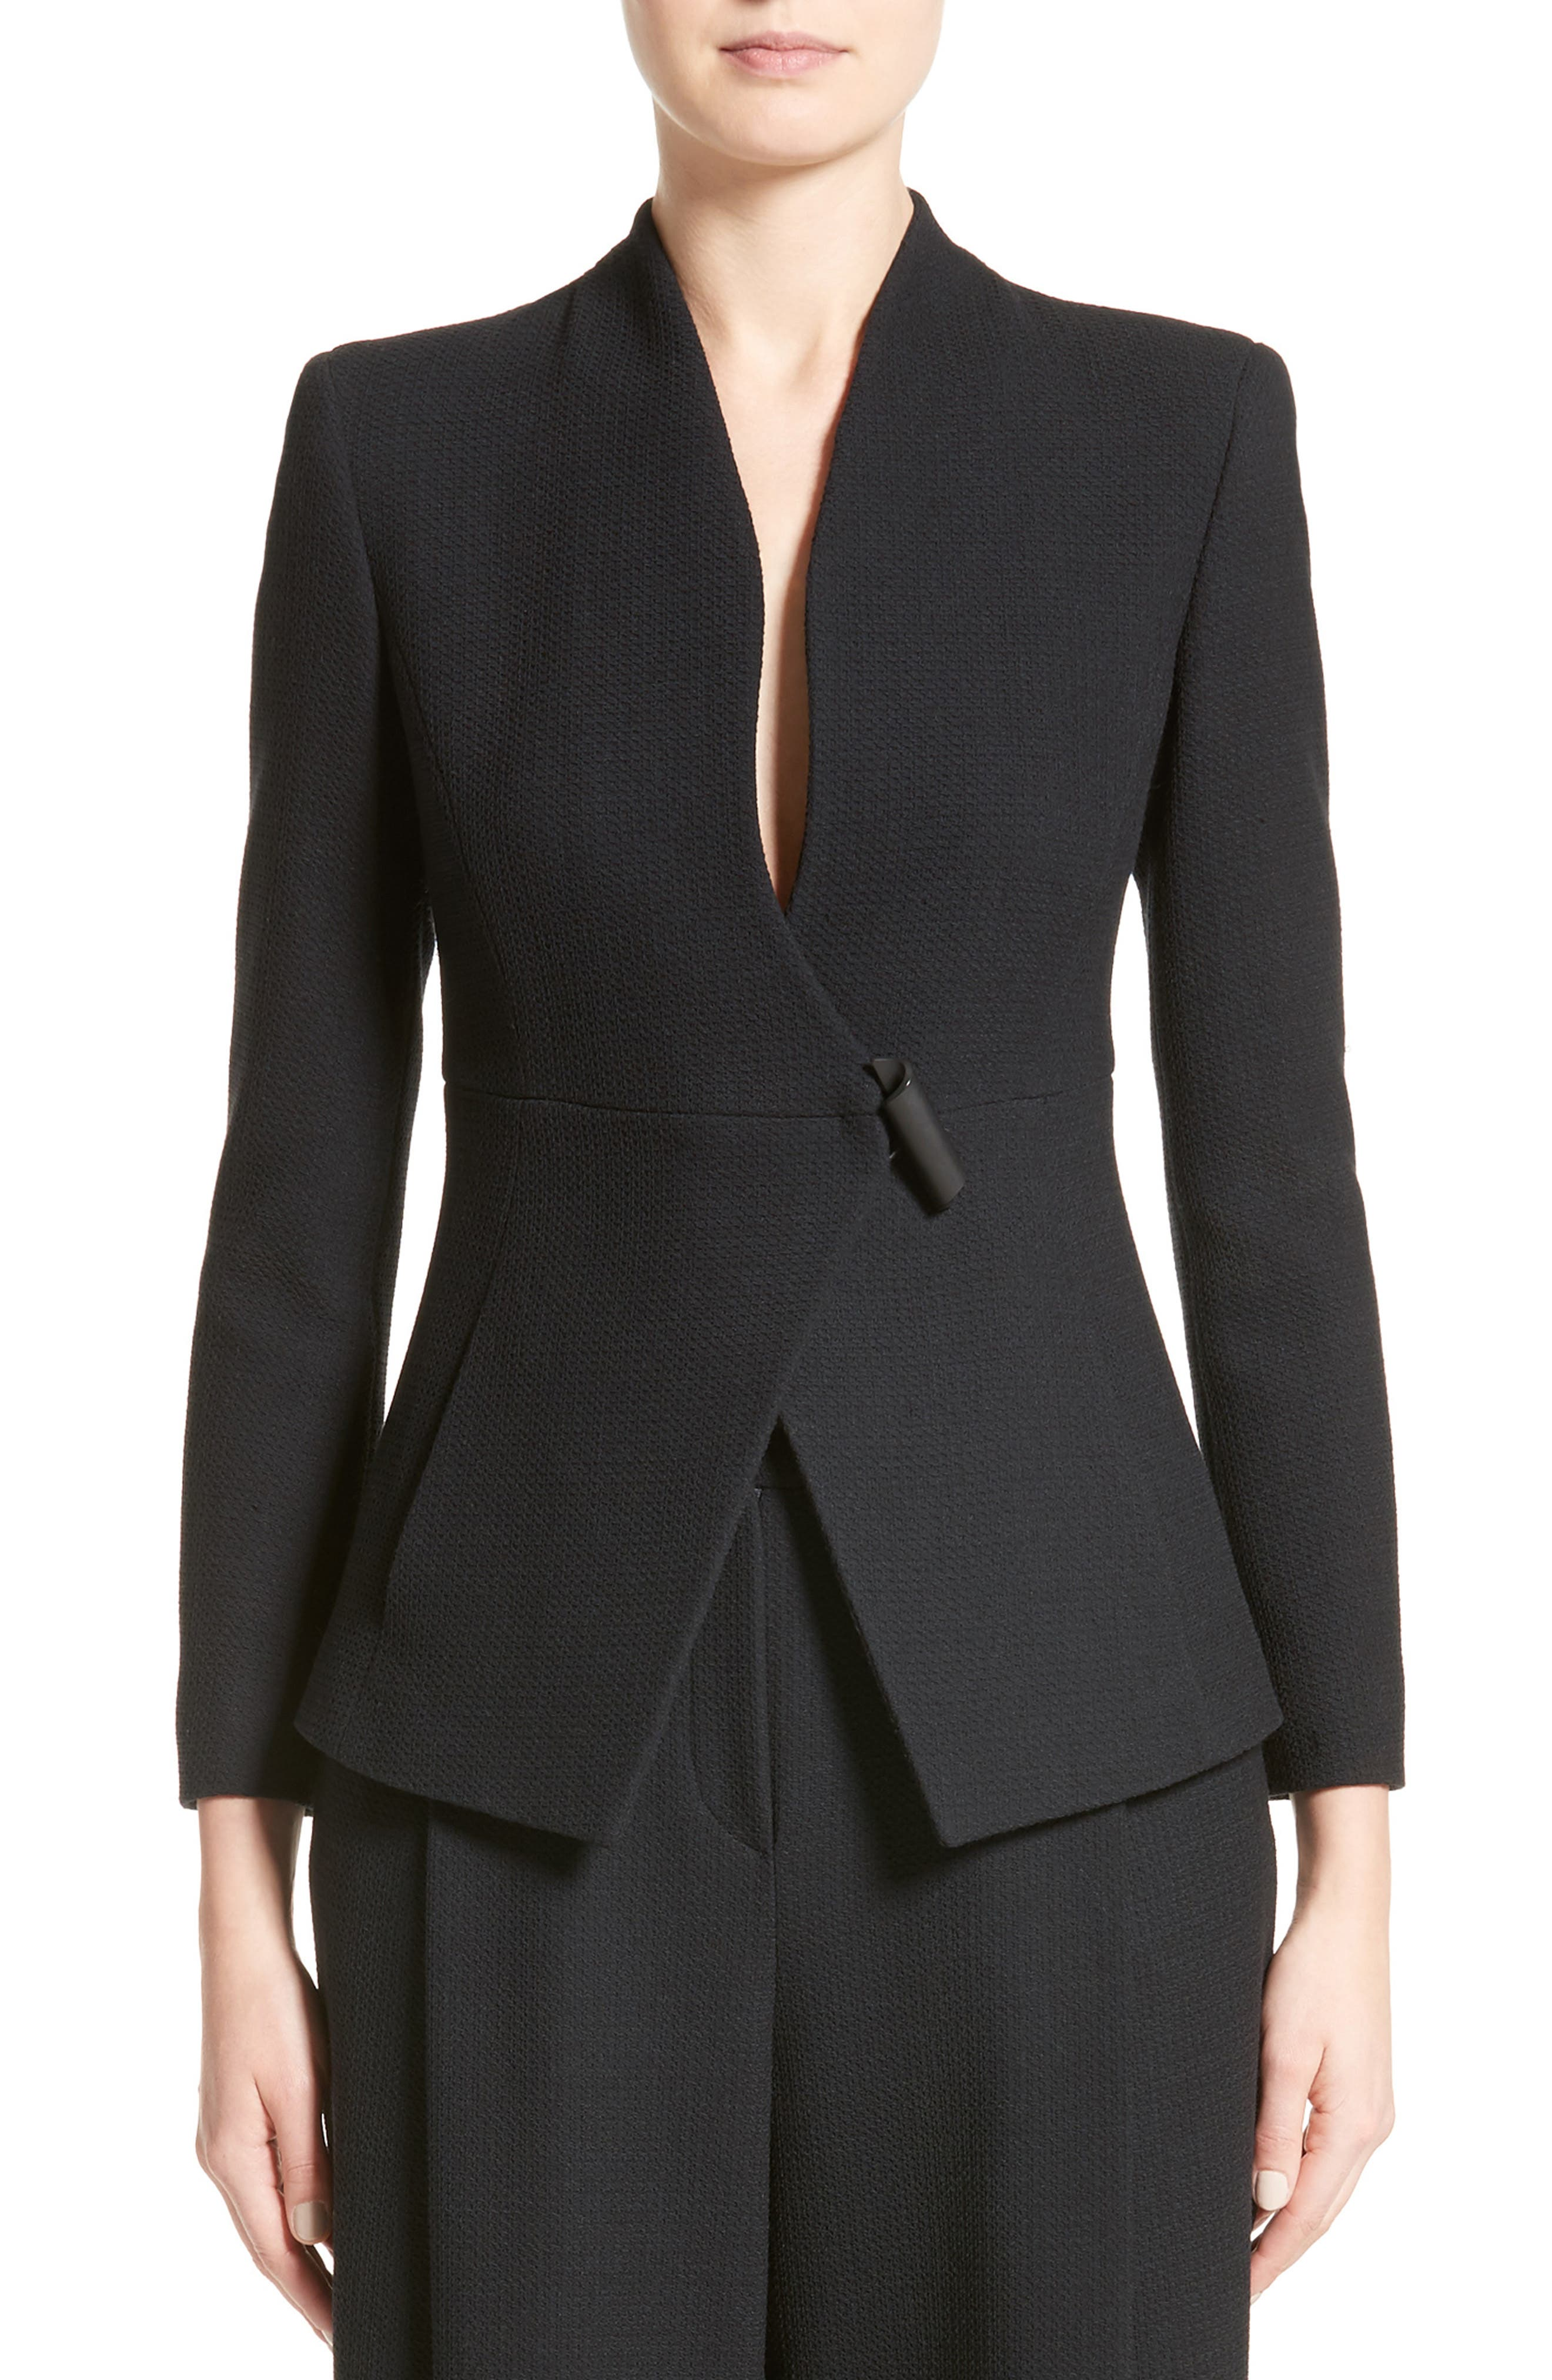 Textured Stretch Wool Jacket,                         Main,                         color, Black